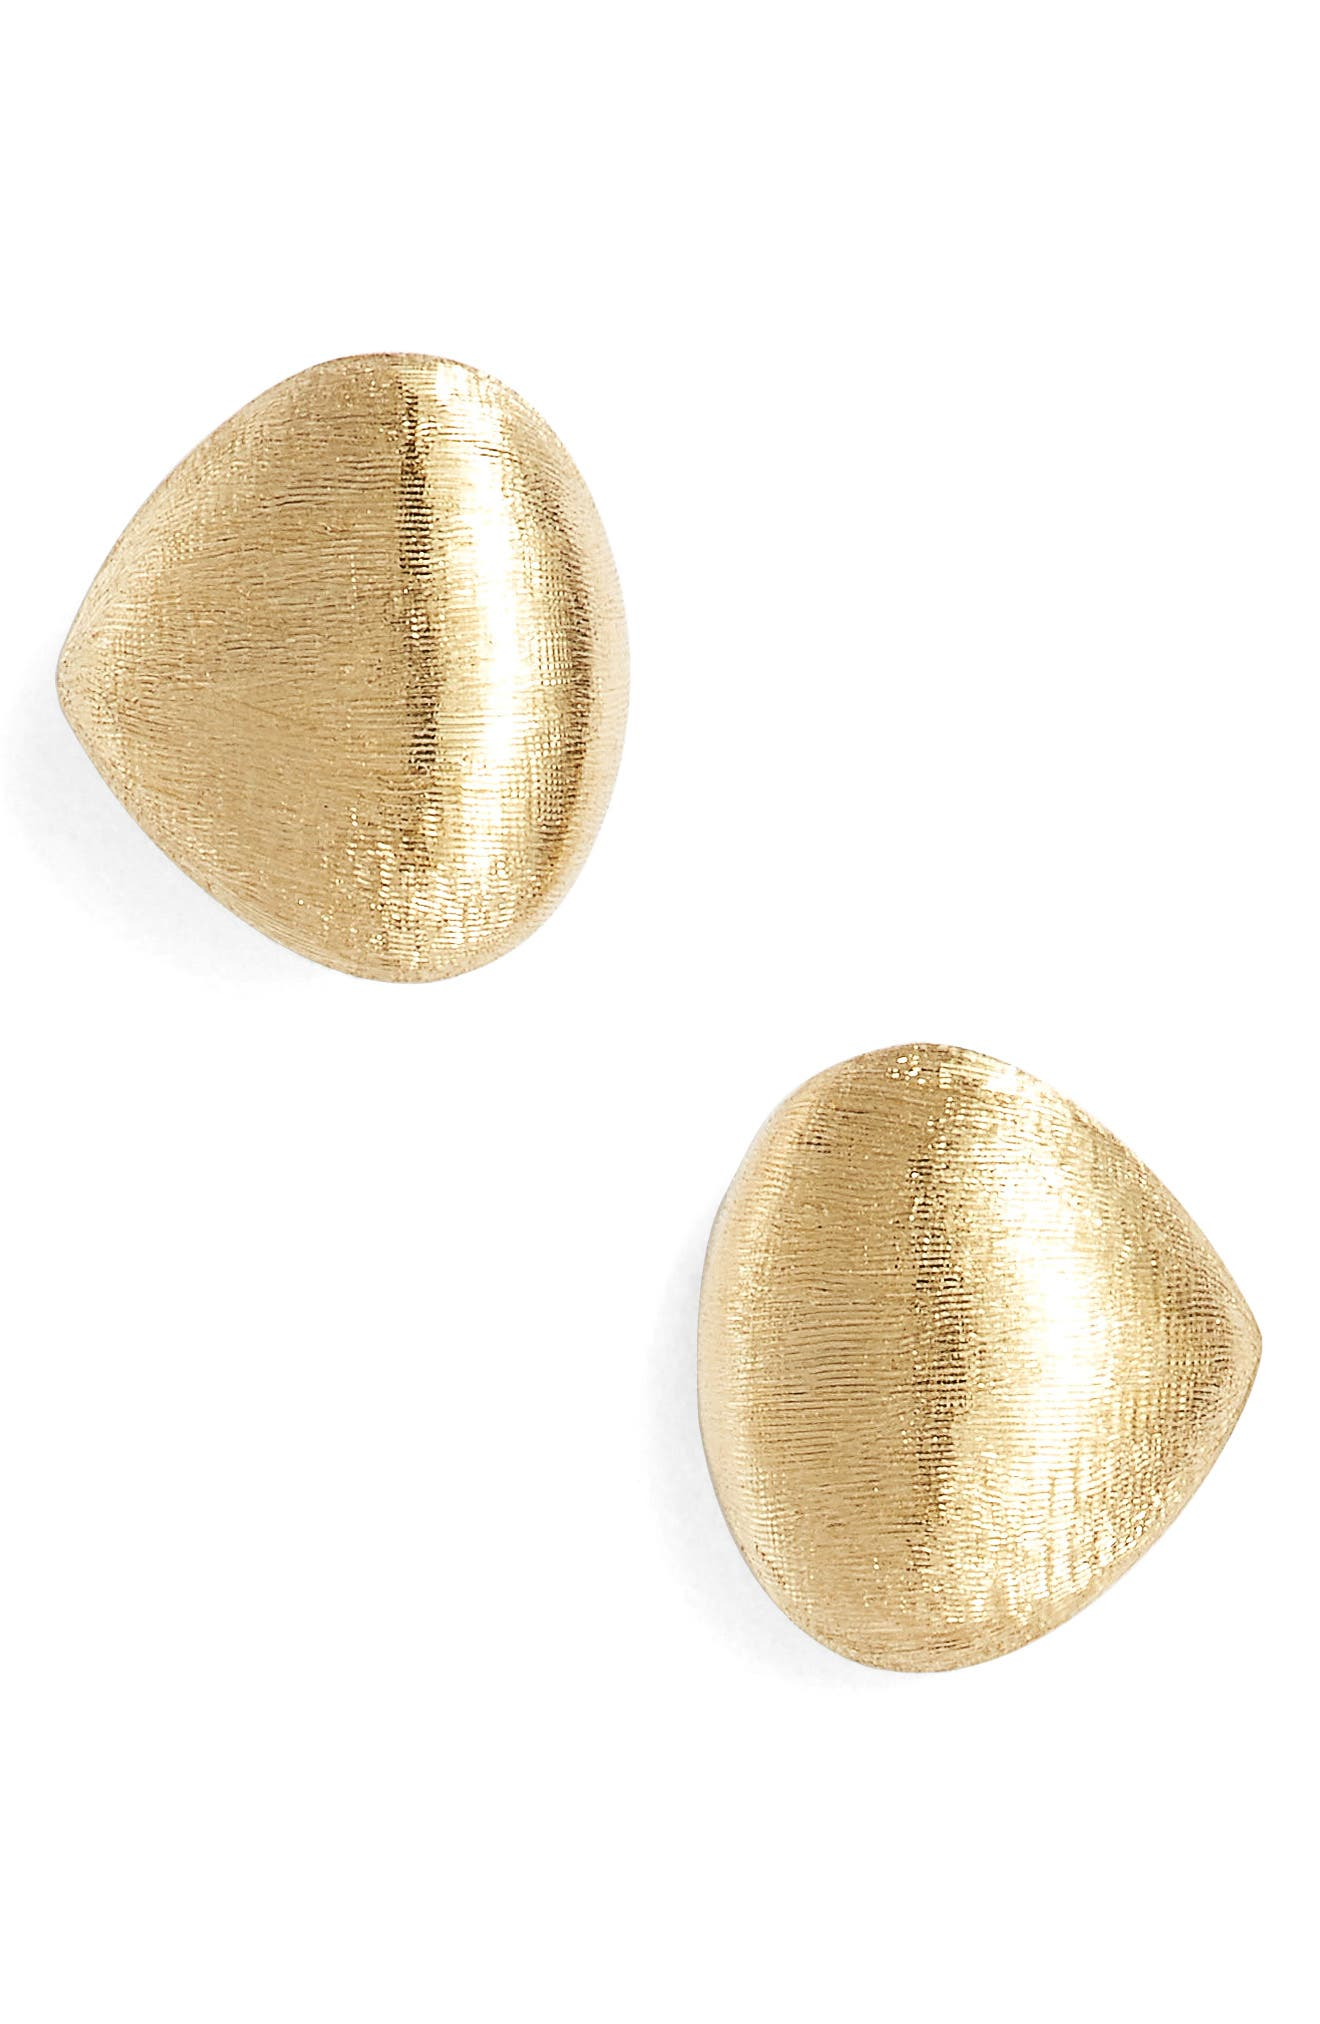 Paradise Stud Earrings,                             Main thumbnail 1, color,                             YELLOW GOLD